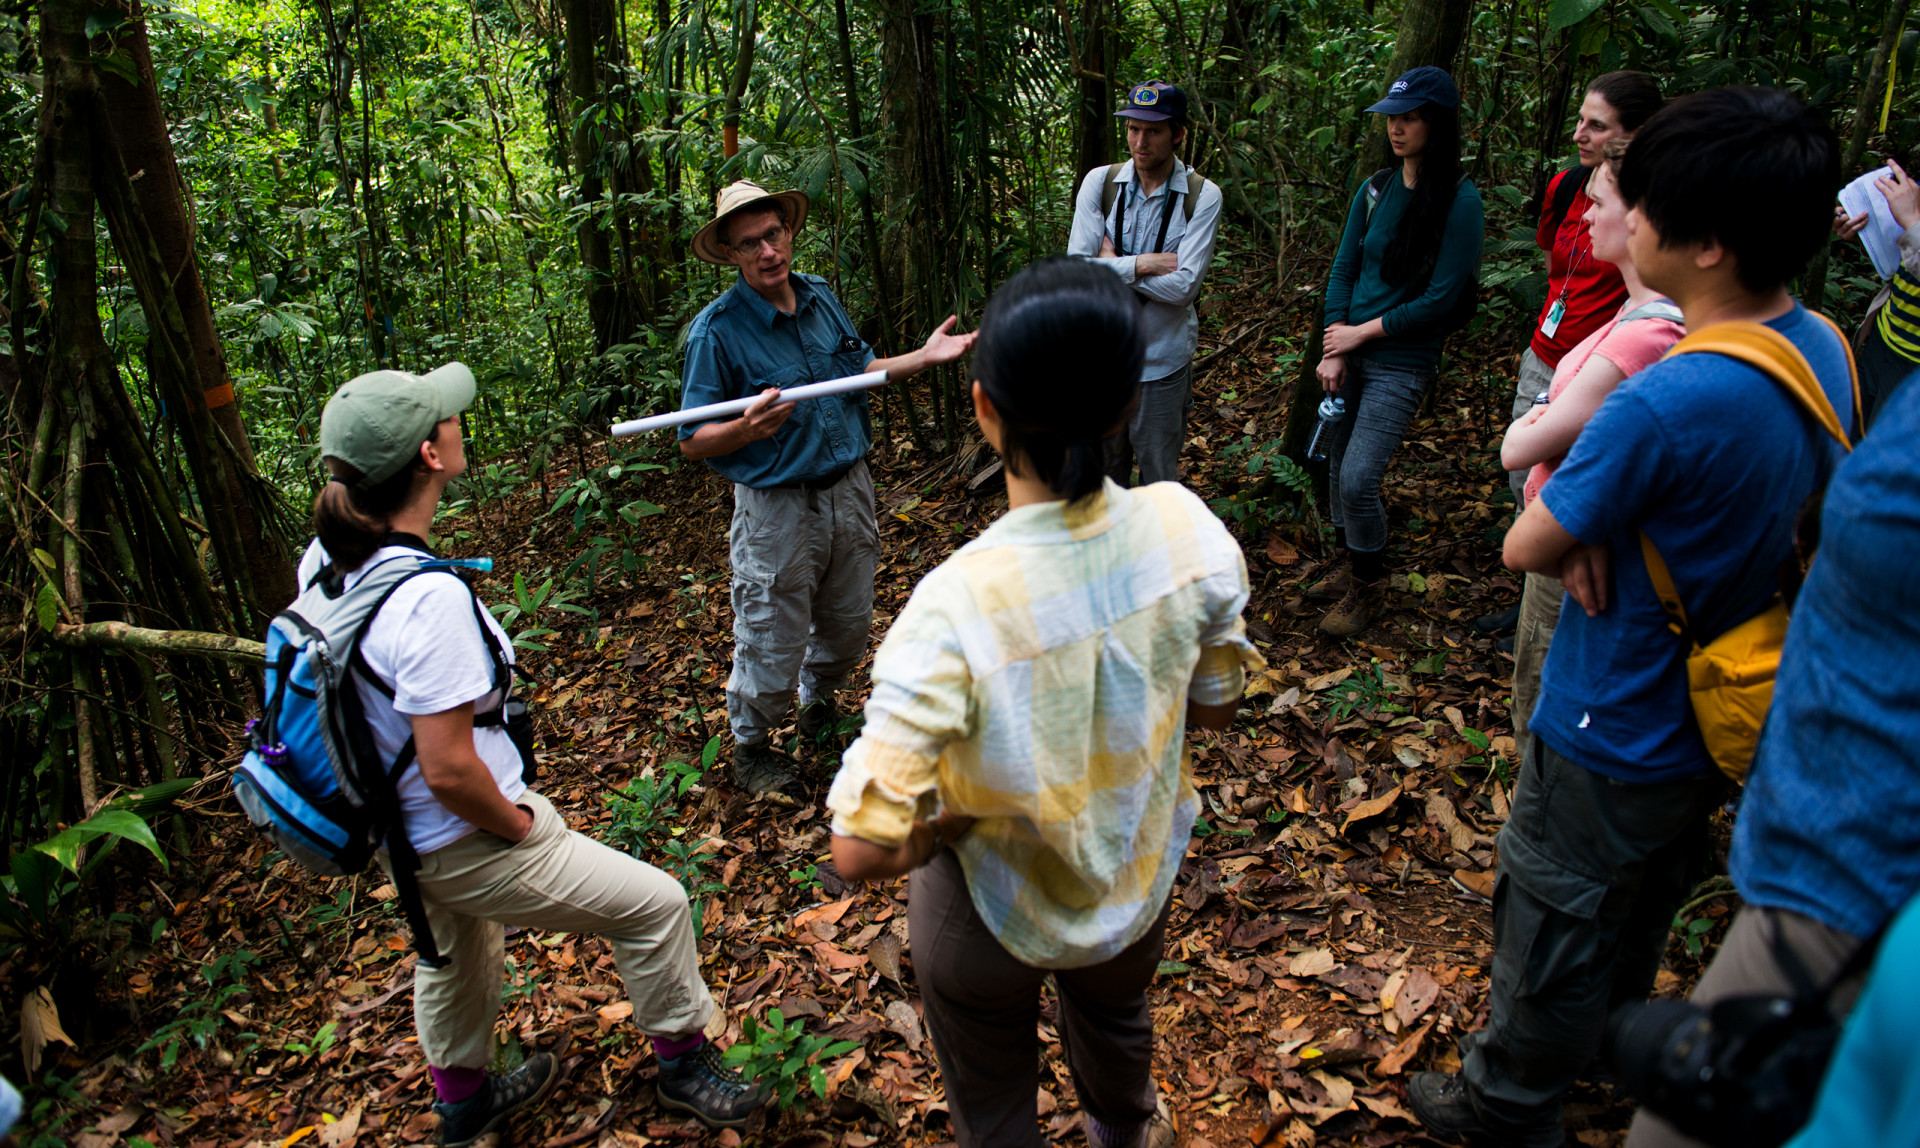 The study was conducted in STRI's Agua Salud project in central Panama, one of the largest landscape-scale studies of secondary forest dynamics in the tropics